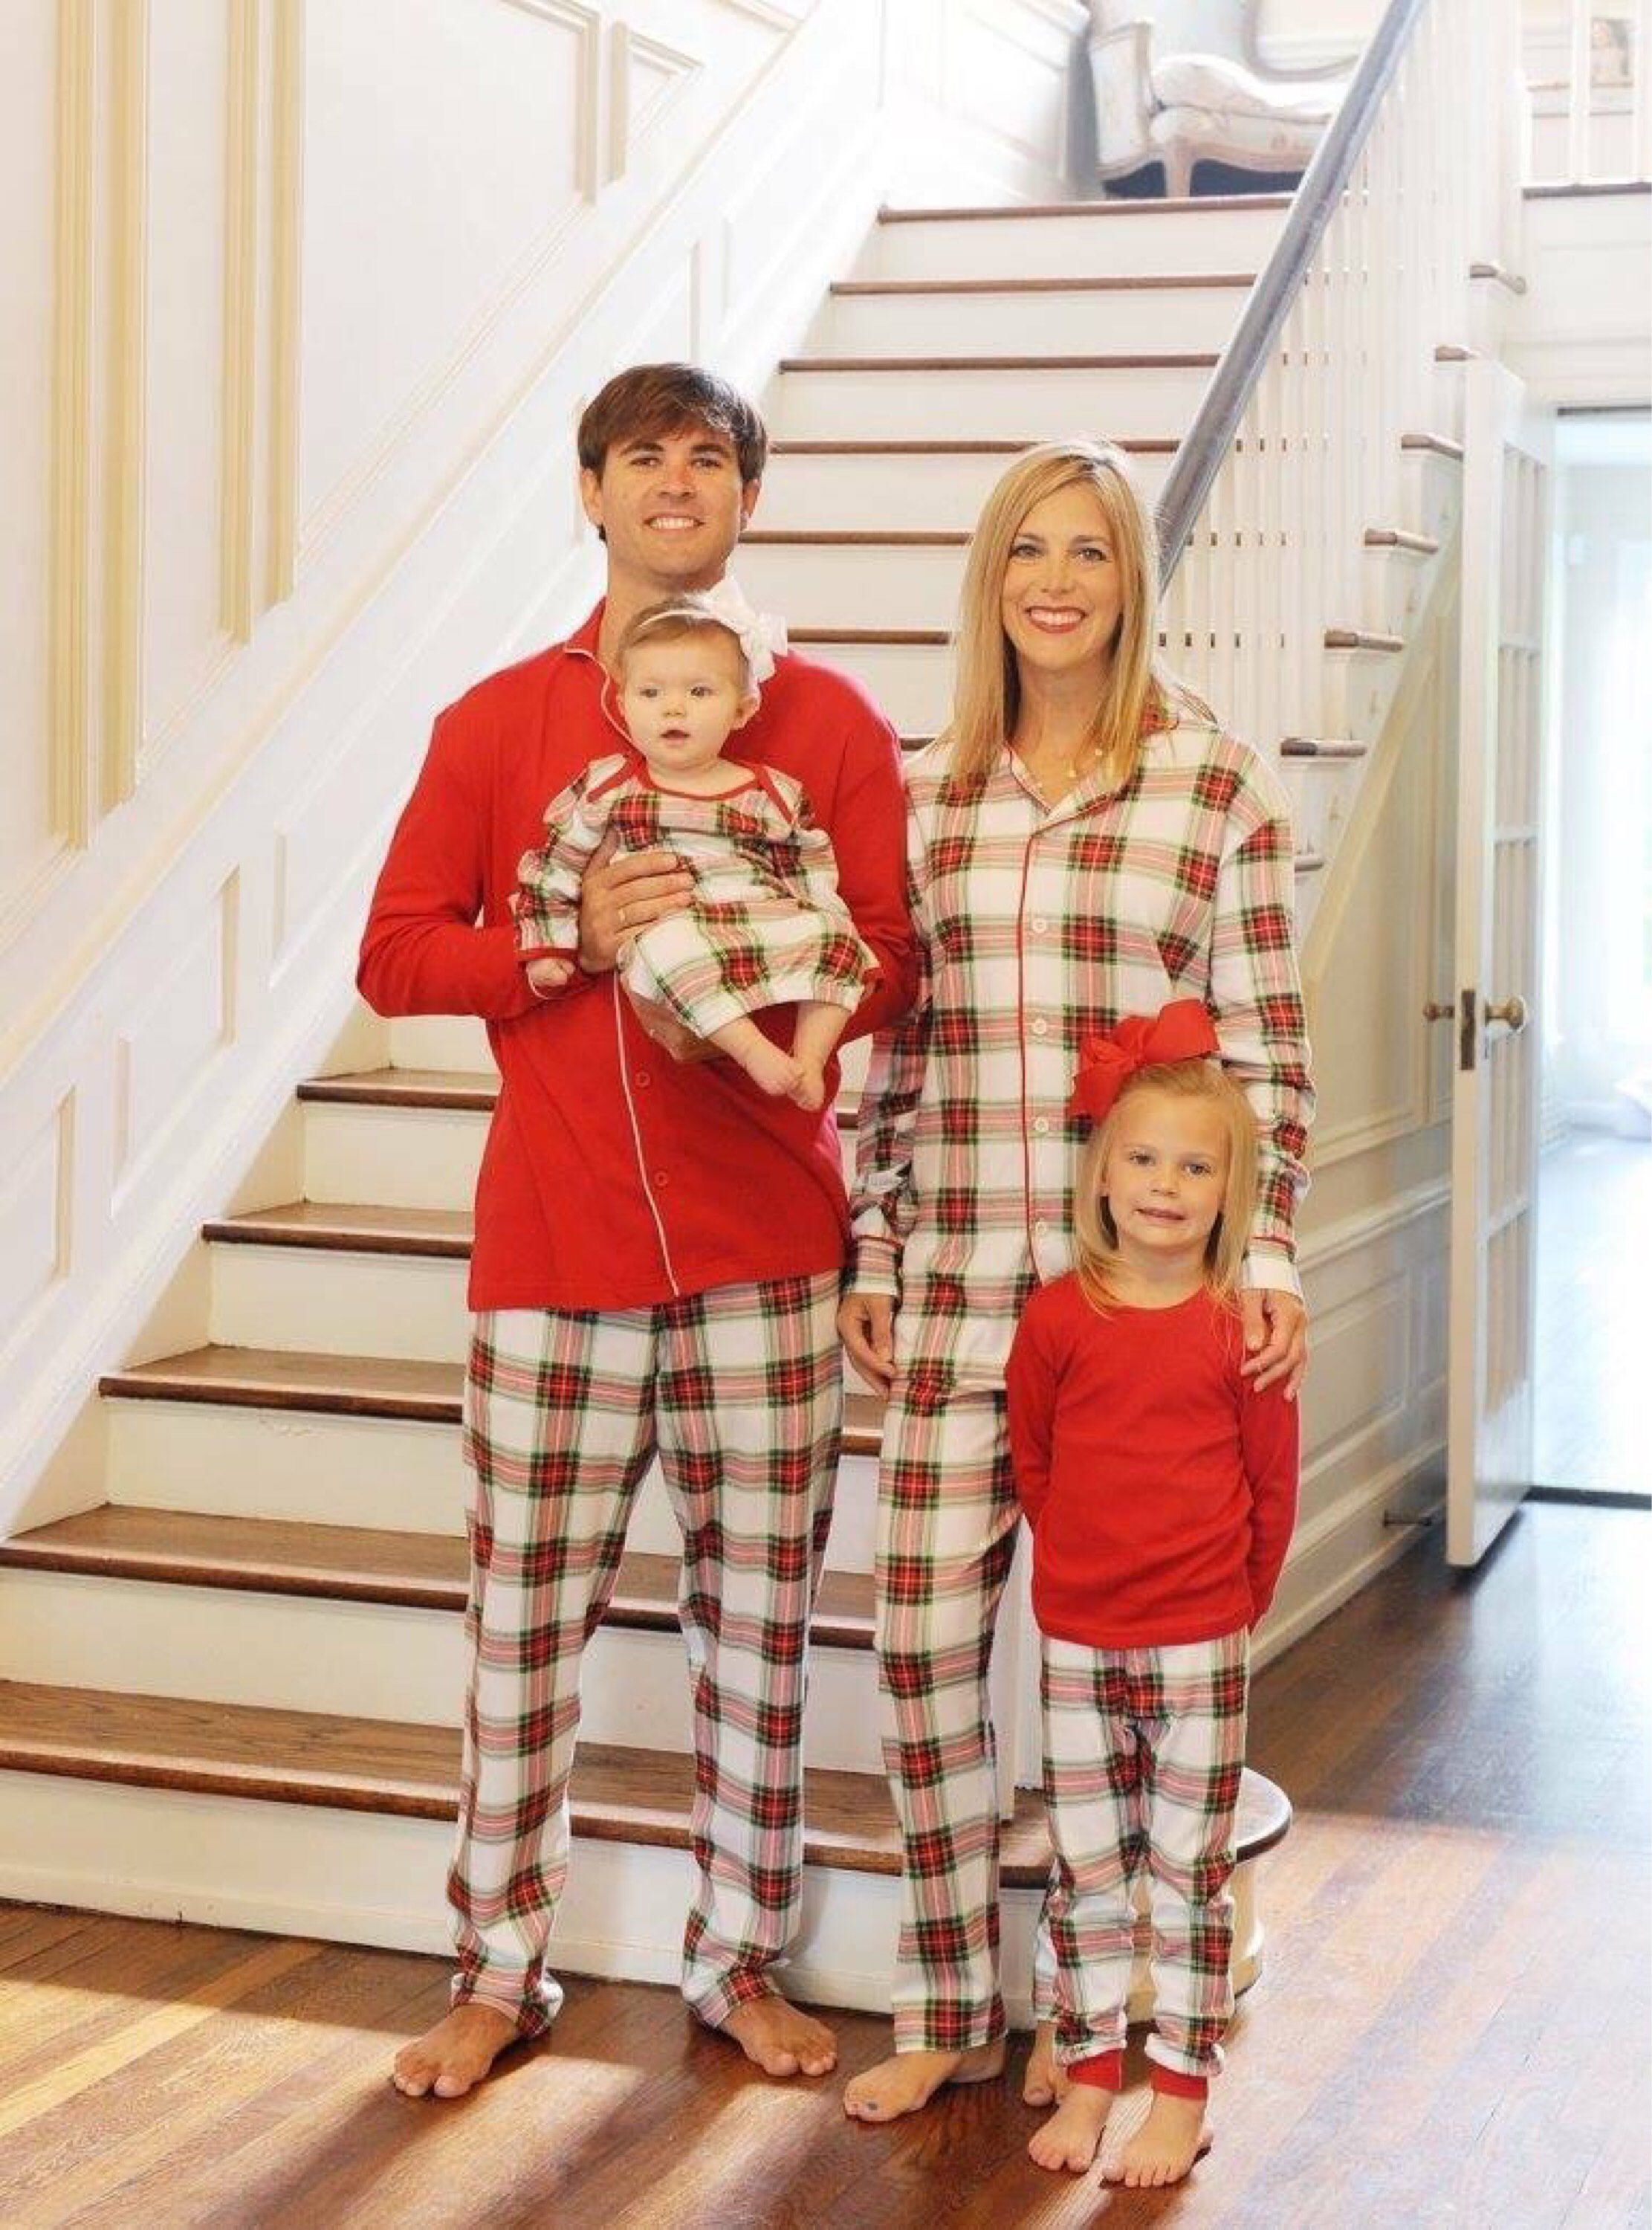 77e7e5d9cf You Can Now Get Matching Christmas Pajamas With Your Dog. Christmas Pajamas